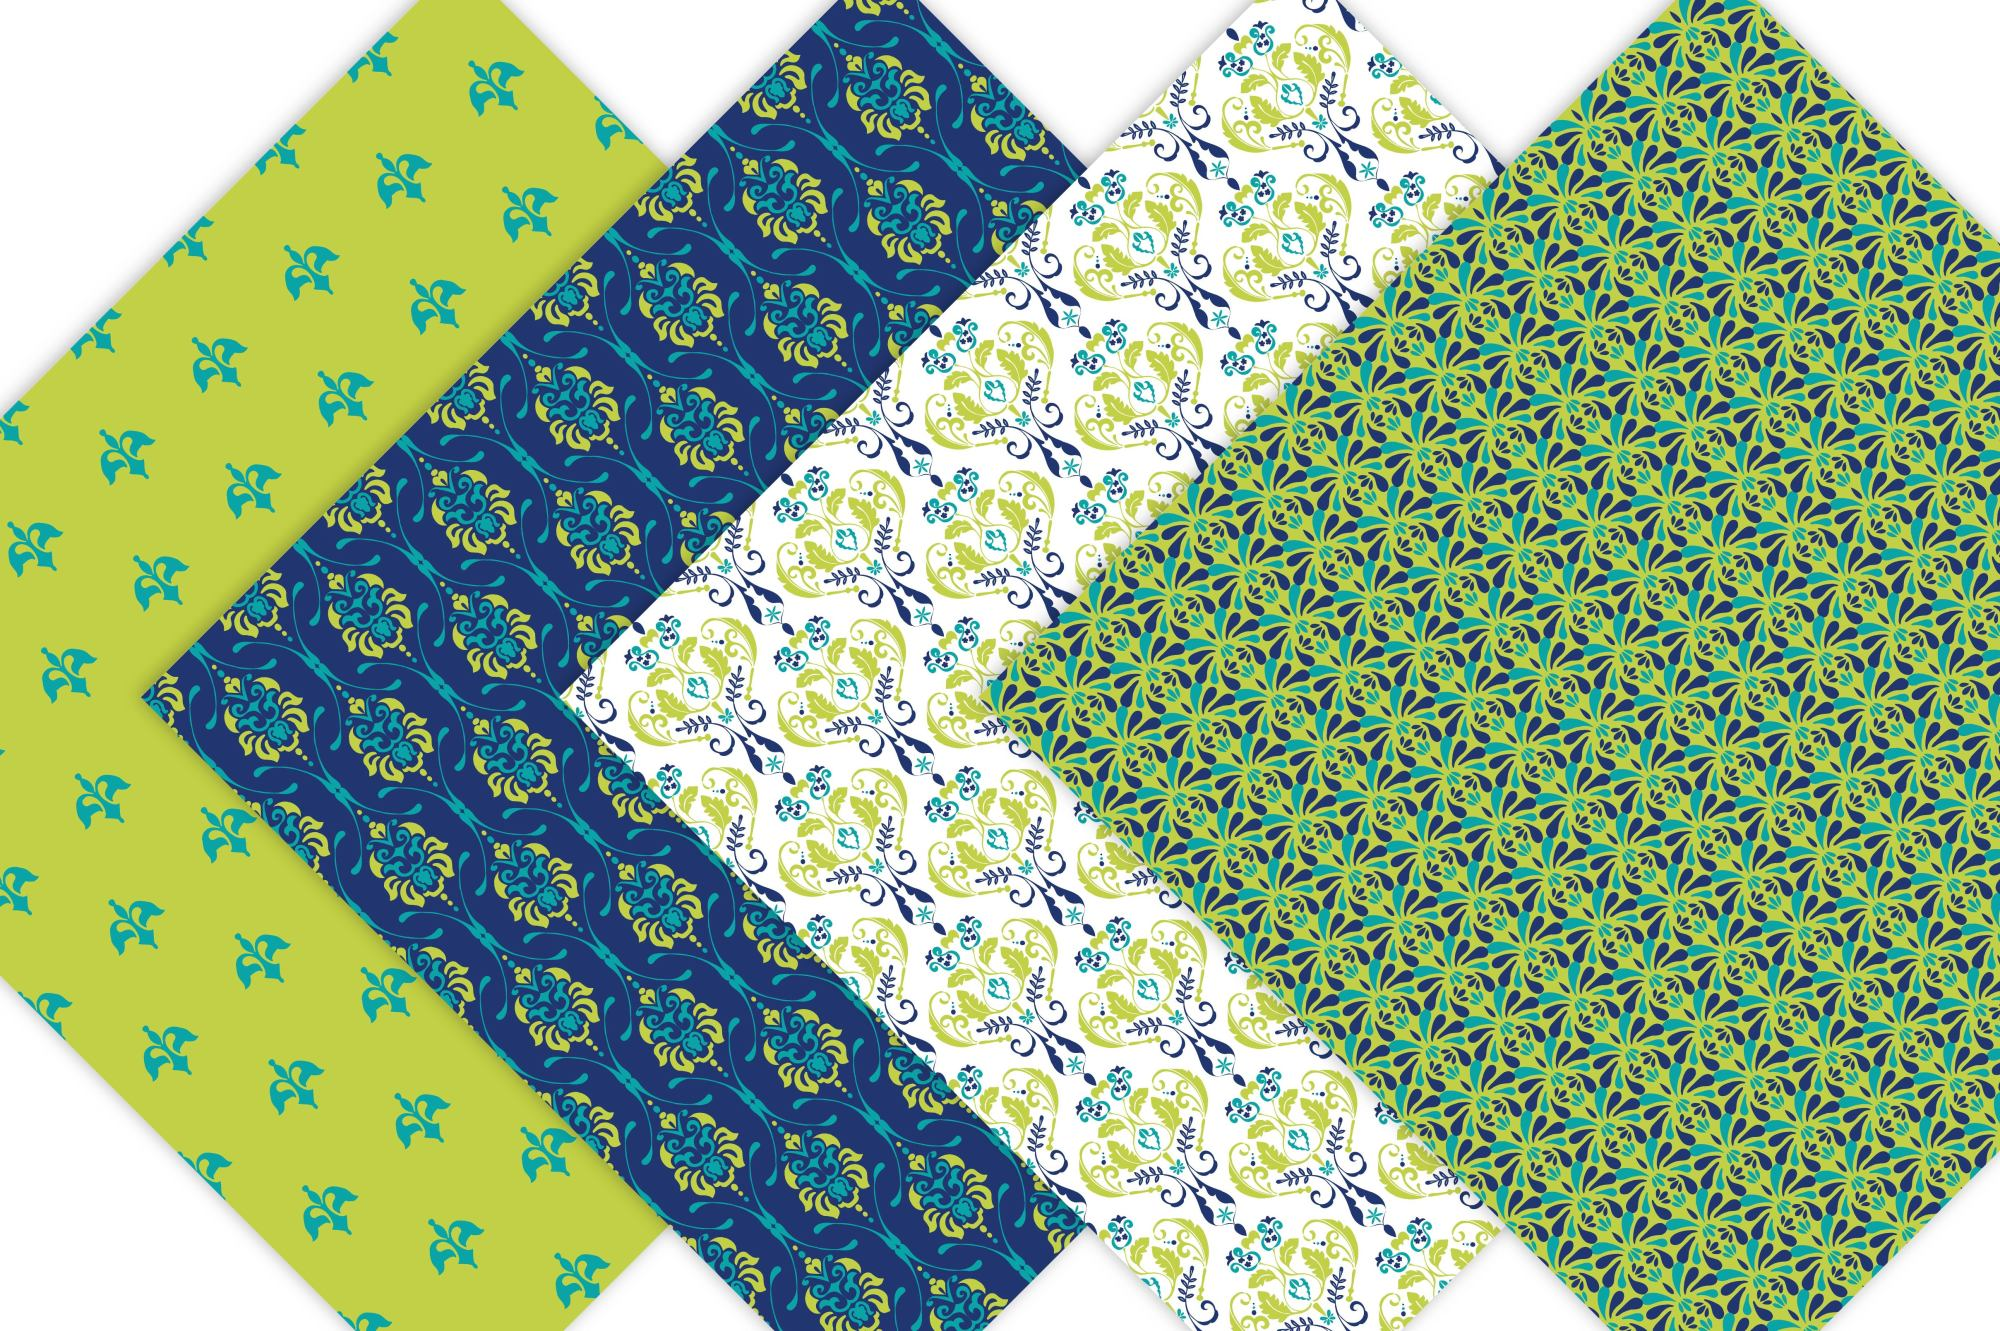 Lime Green and Navy Blue Digital Paper example image 4